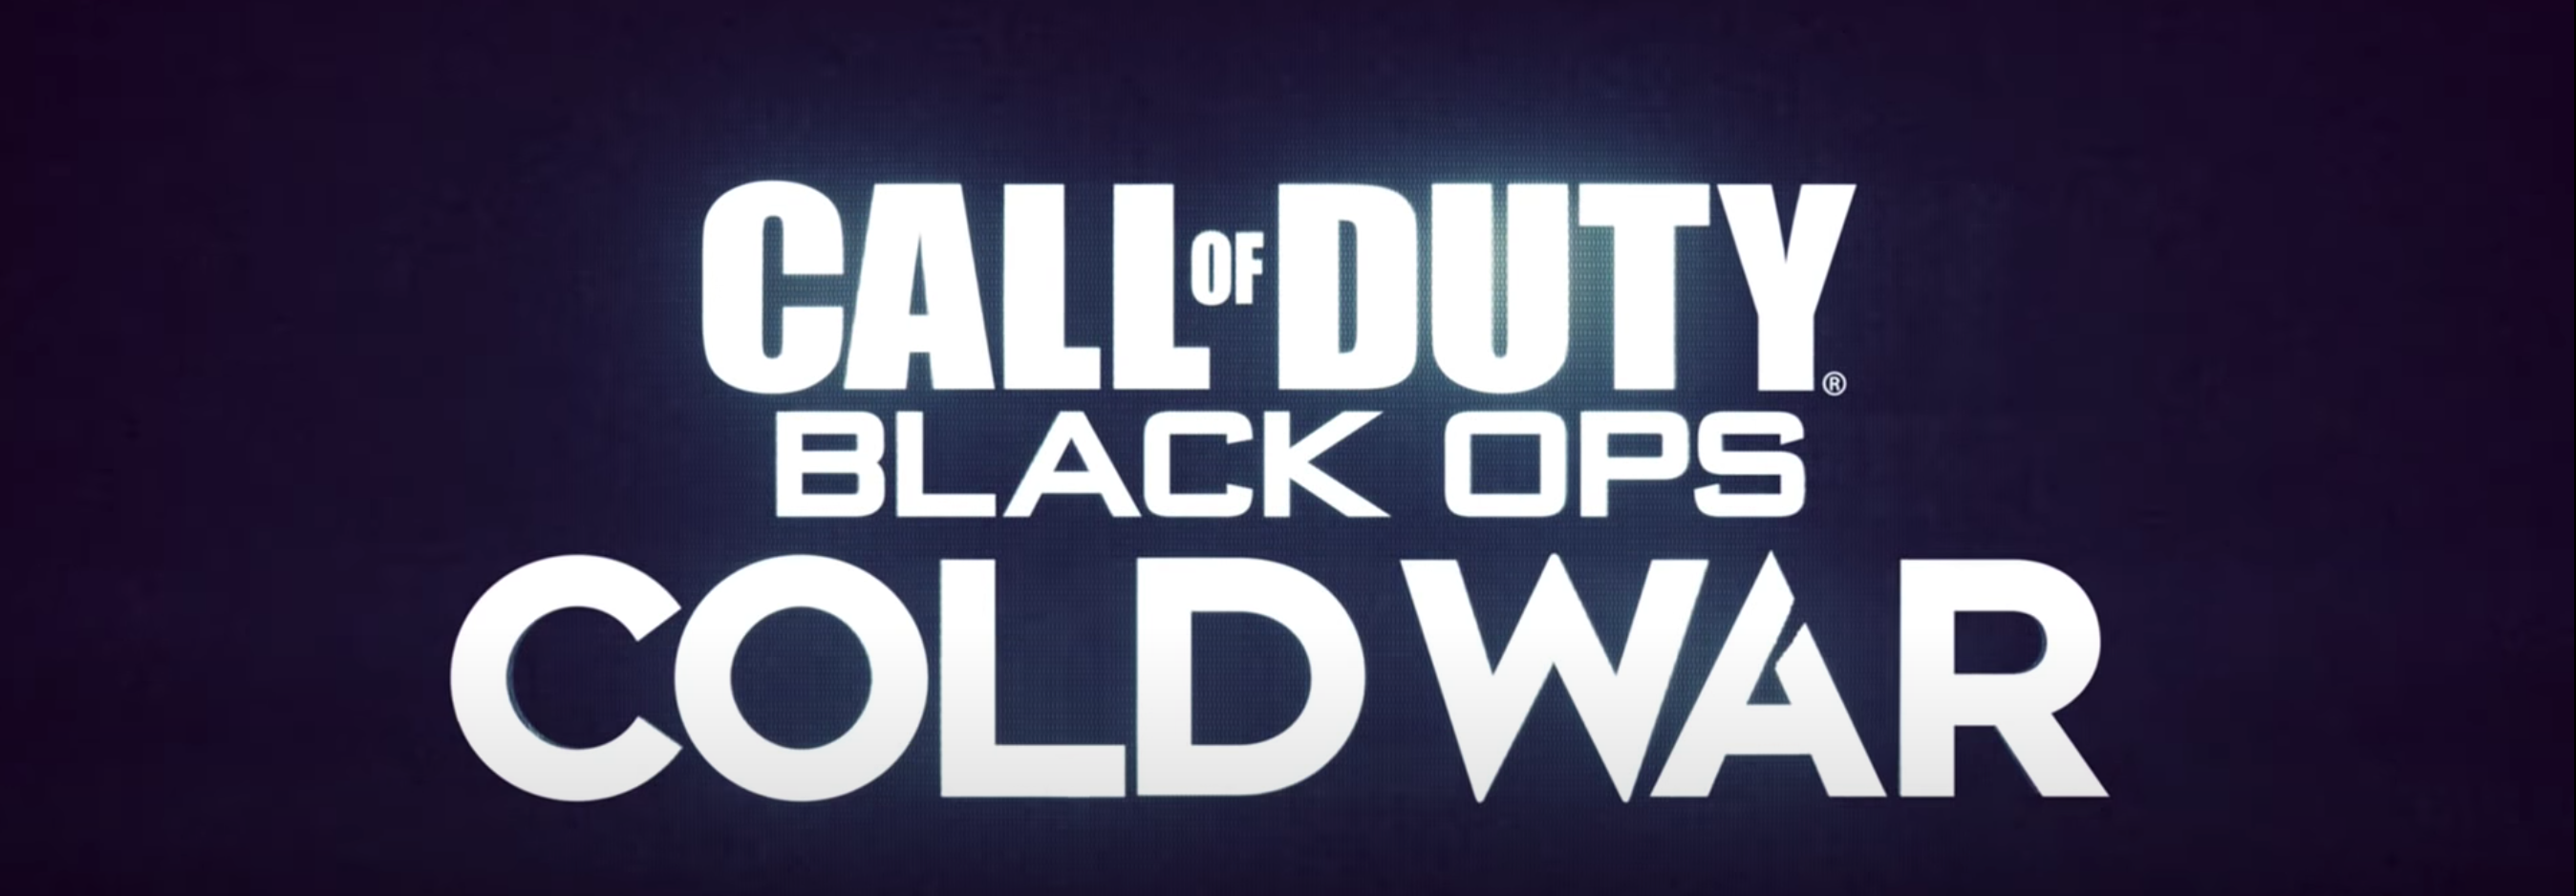 Call of Duty: Black Ops Cold War announced